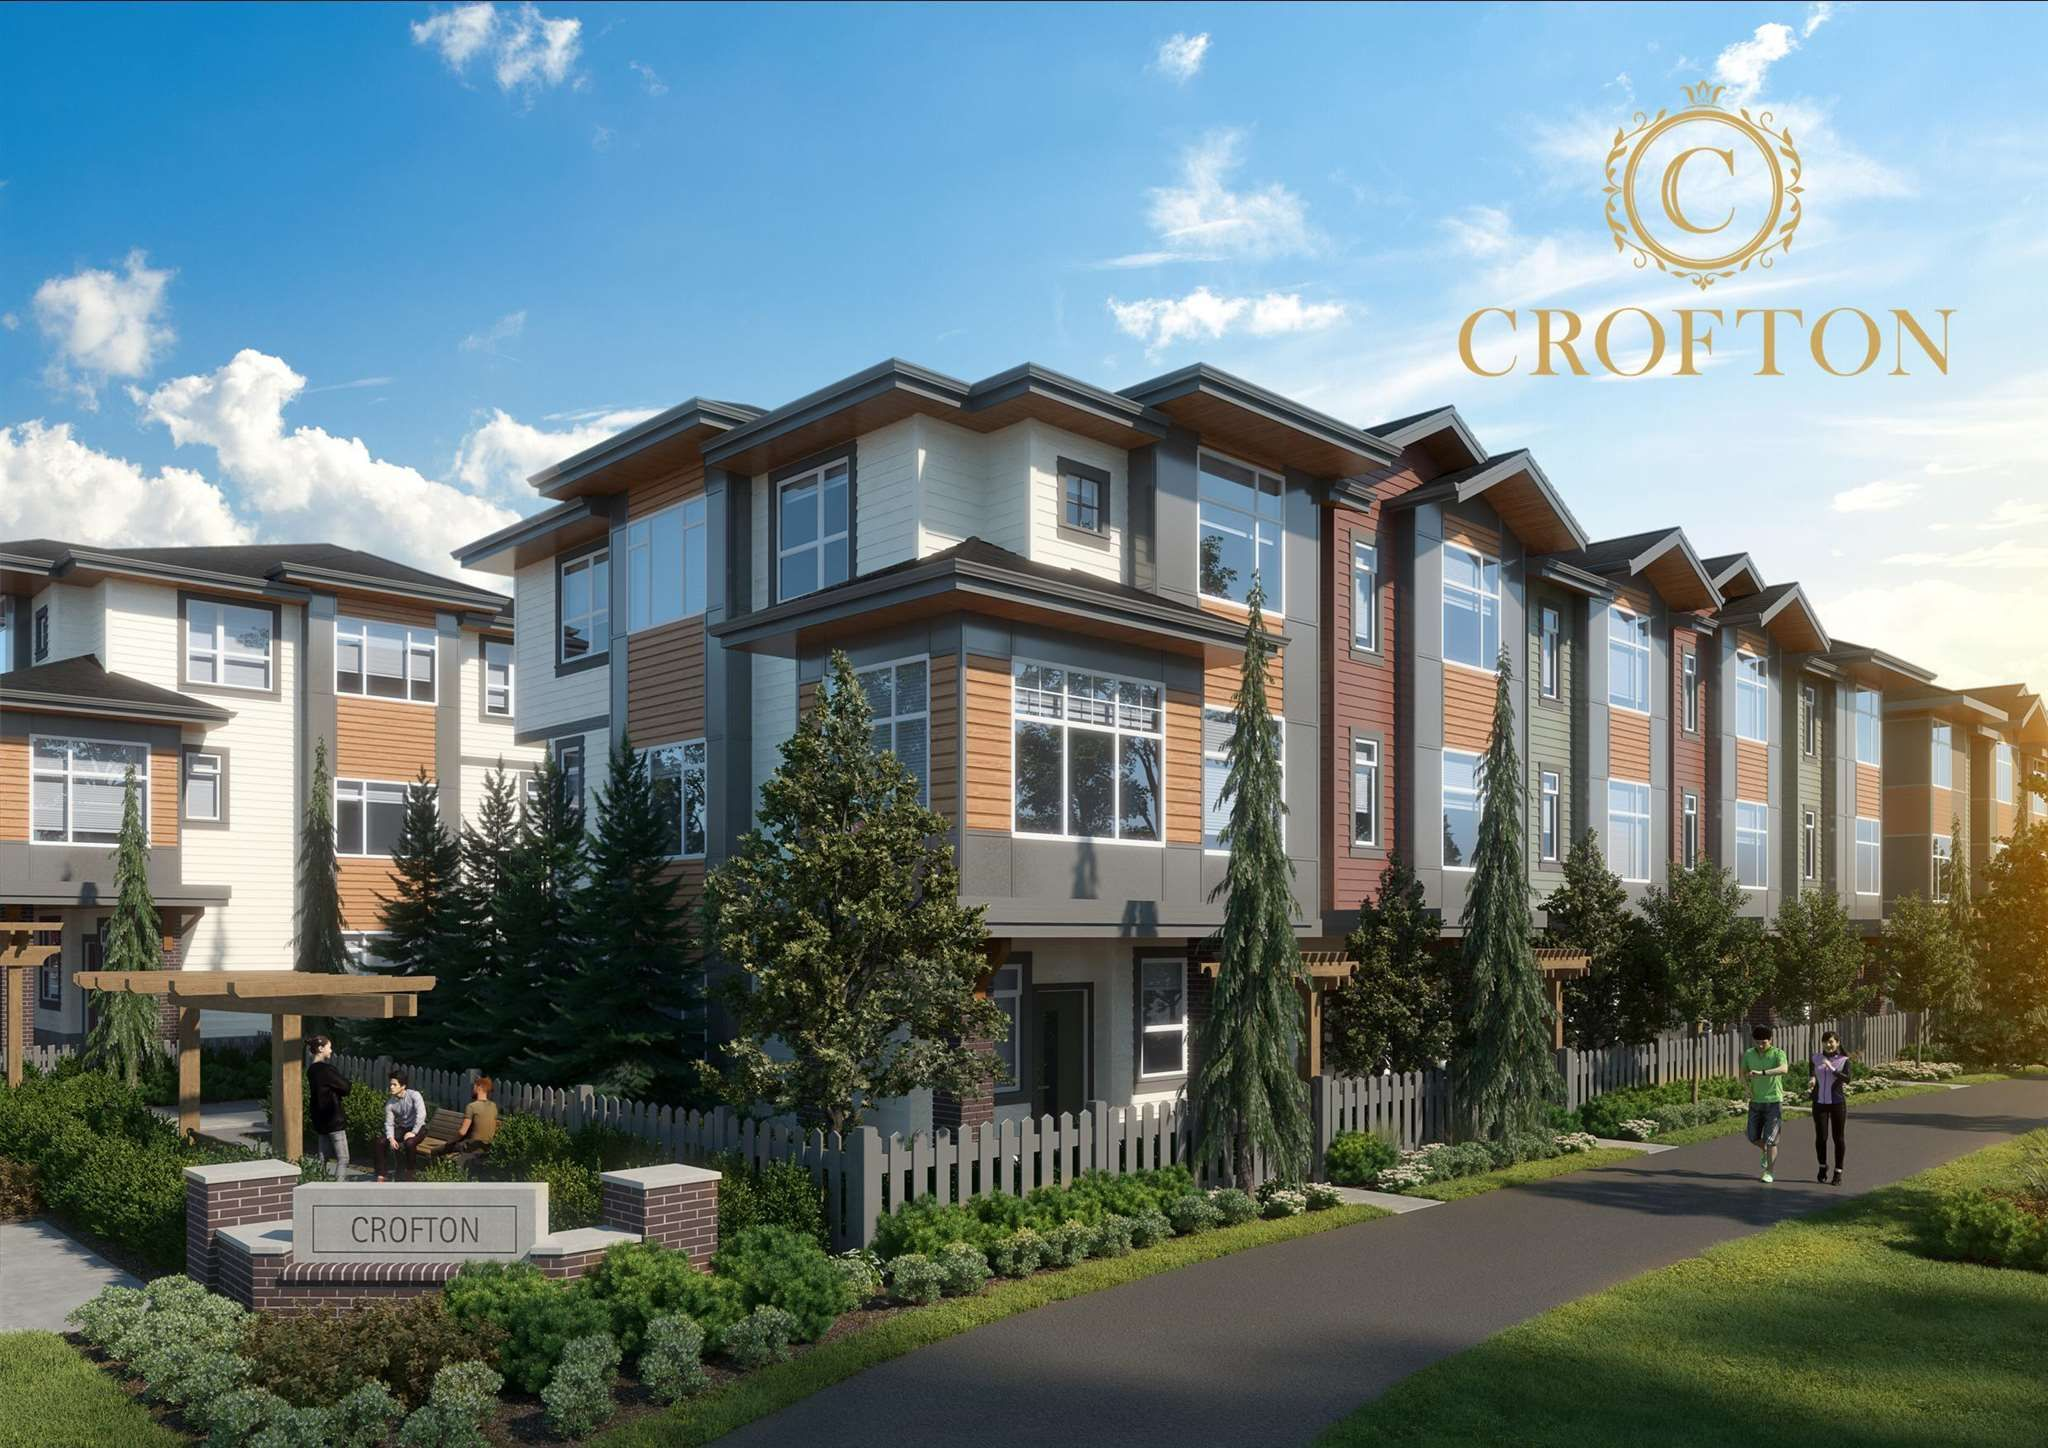 """Main Photo: 38 20763 76 Avenue in Langley: Willoughby Heights Townhouse for sale in """"CROFTON"""" : MLS®# R2595938"""